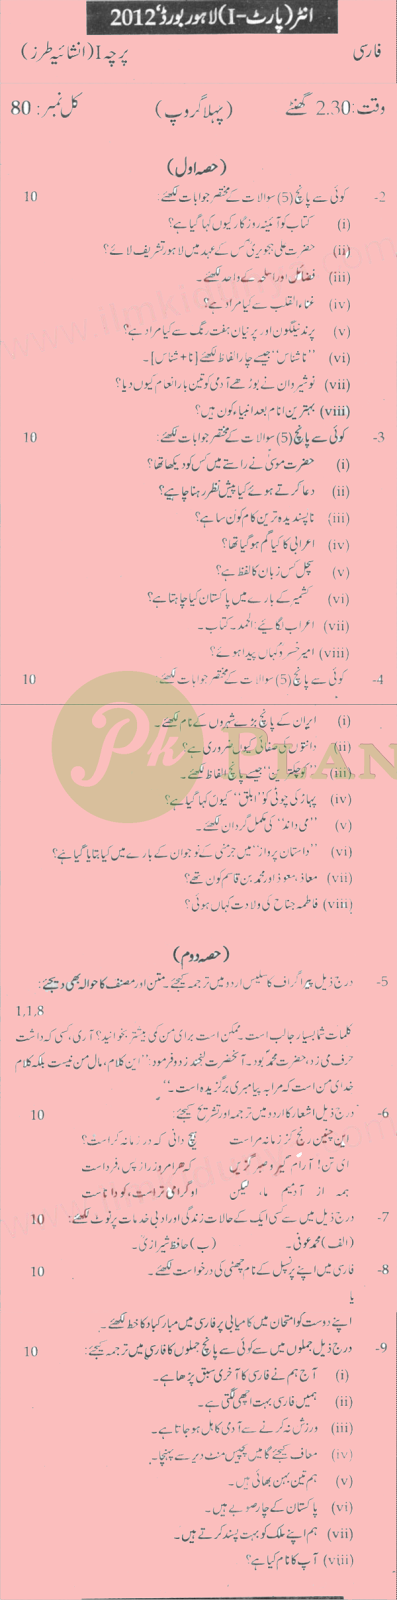 Past Papers of Persian Inter Part 1 Lahore Board 2012